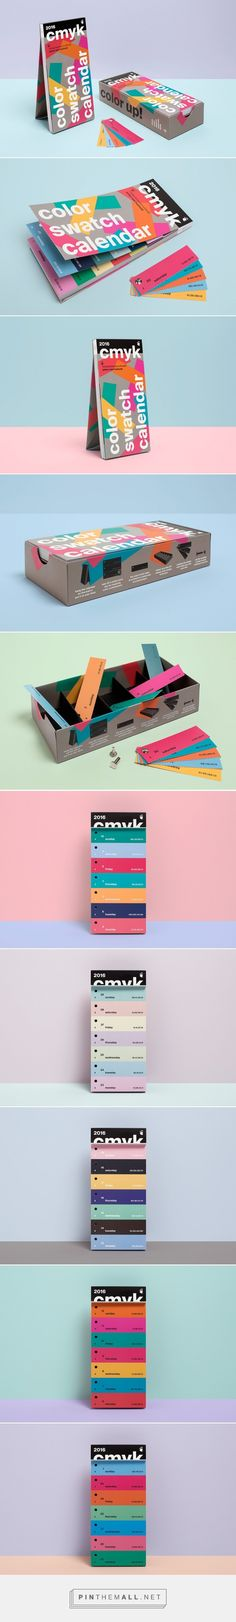 Color Swatch Calendar 2016 Designed by Peter von Freyhold